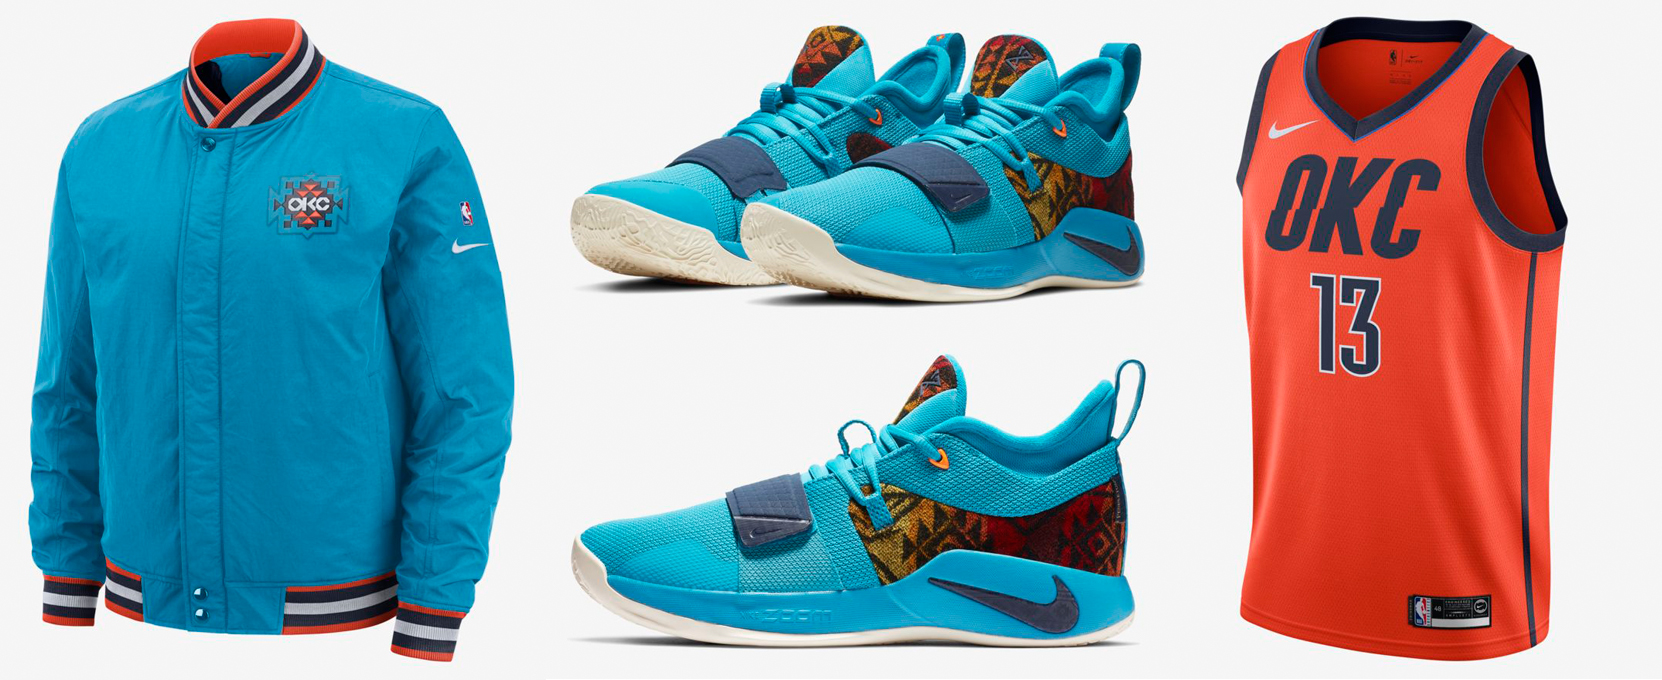 wholesale dealer e2861 b008f Nike PG 25 Pendleton OKC Thunder Gear Match | SneakerFits.com